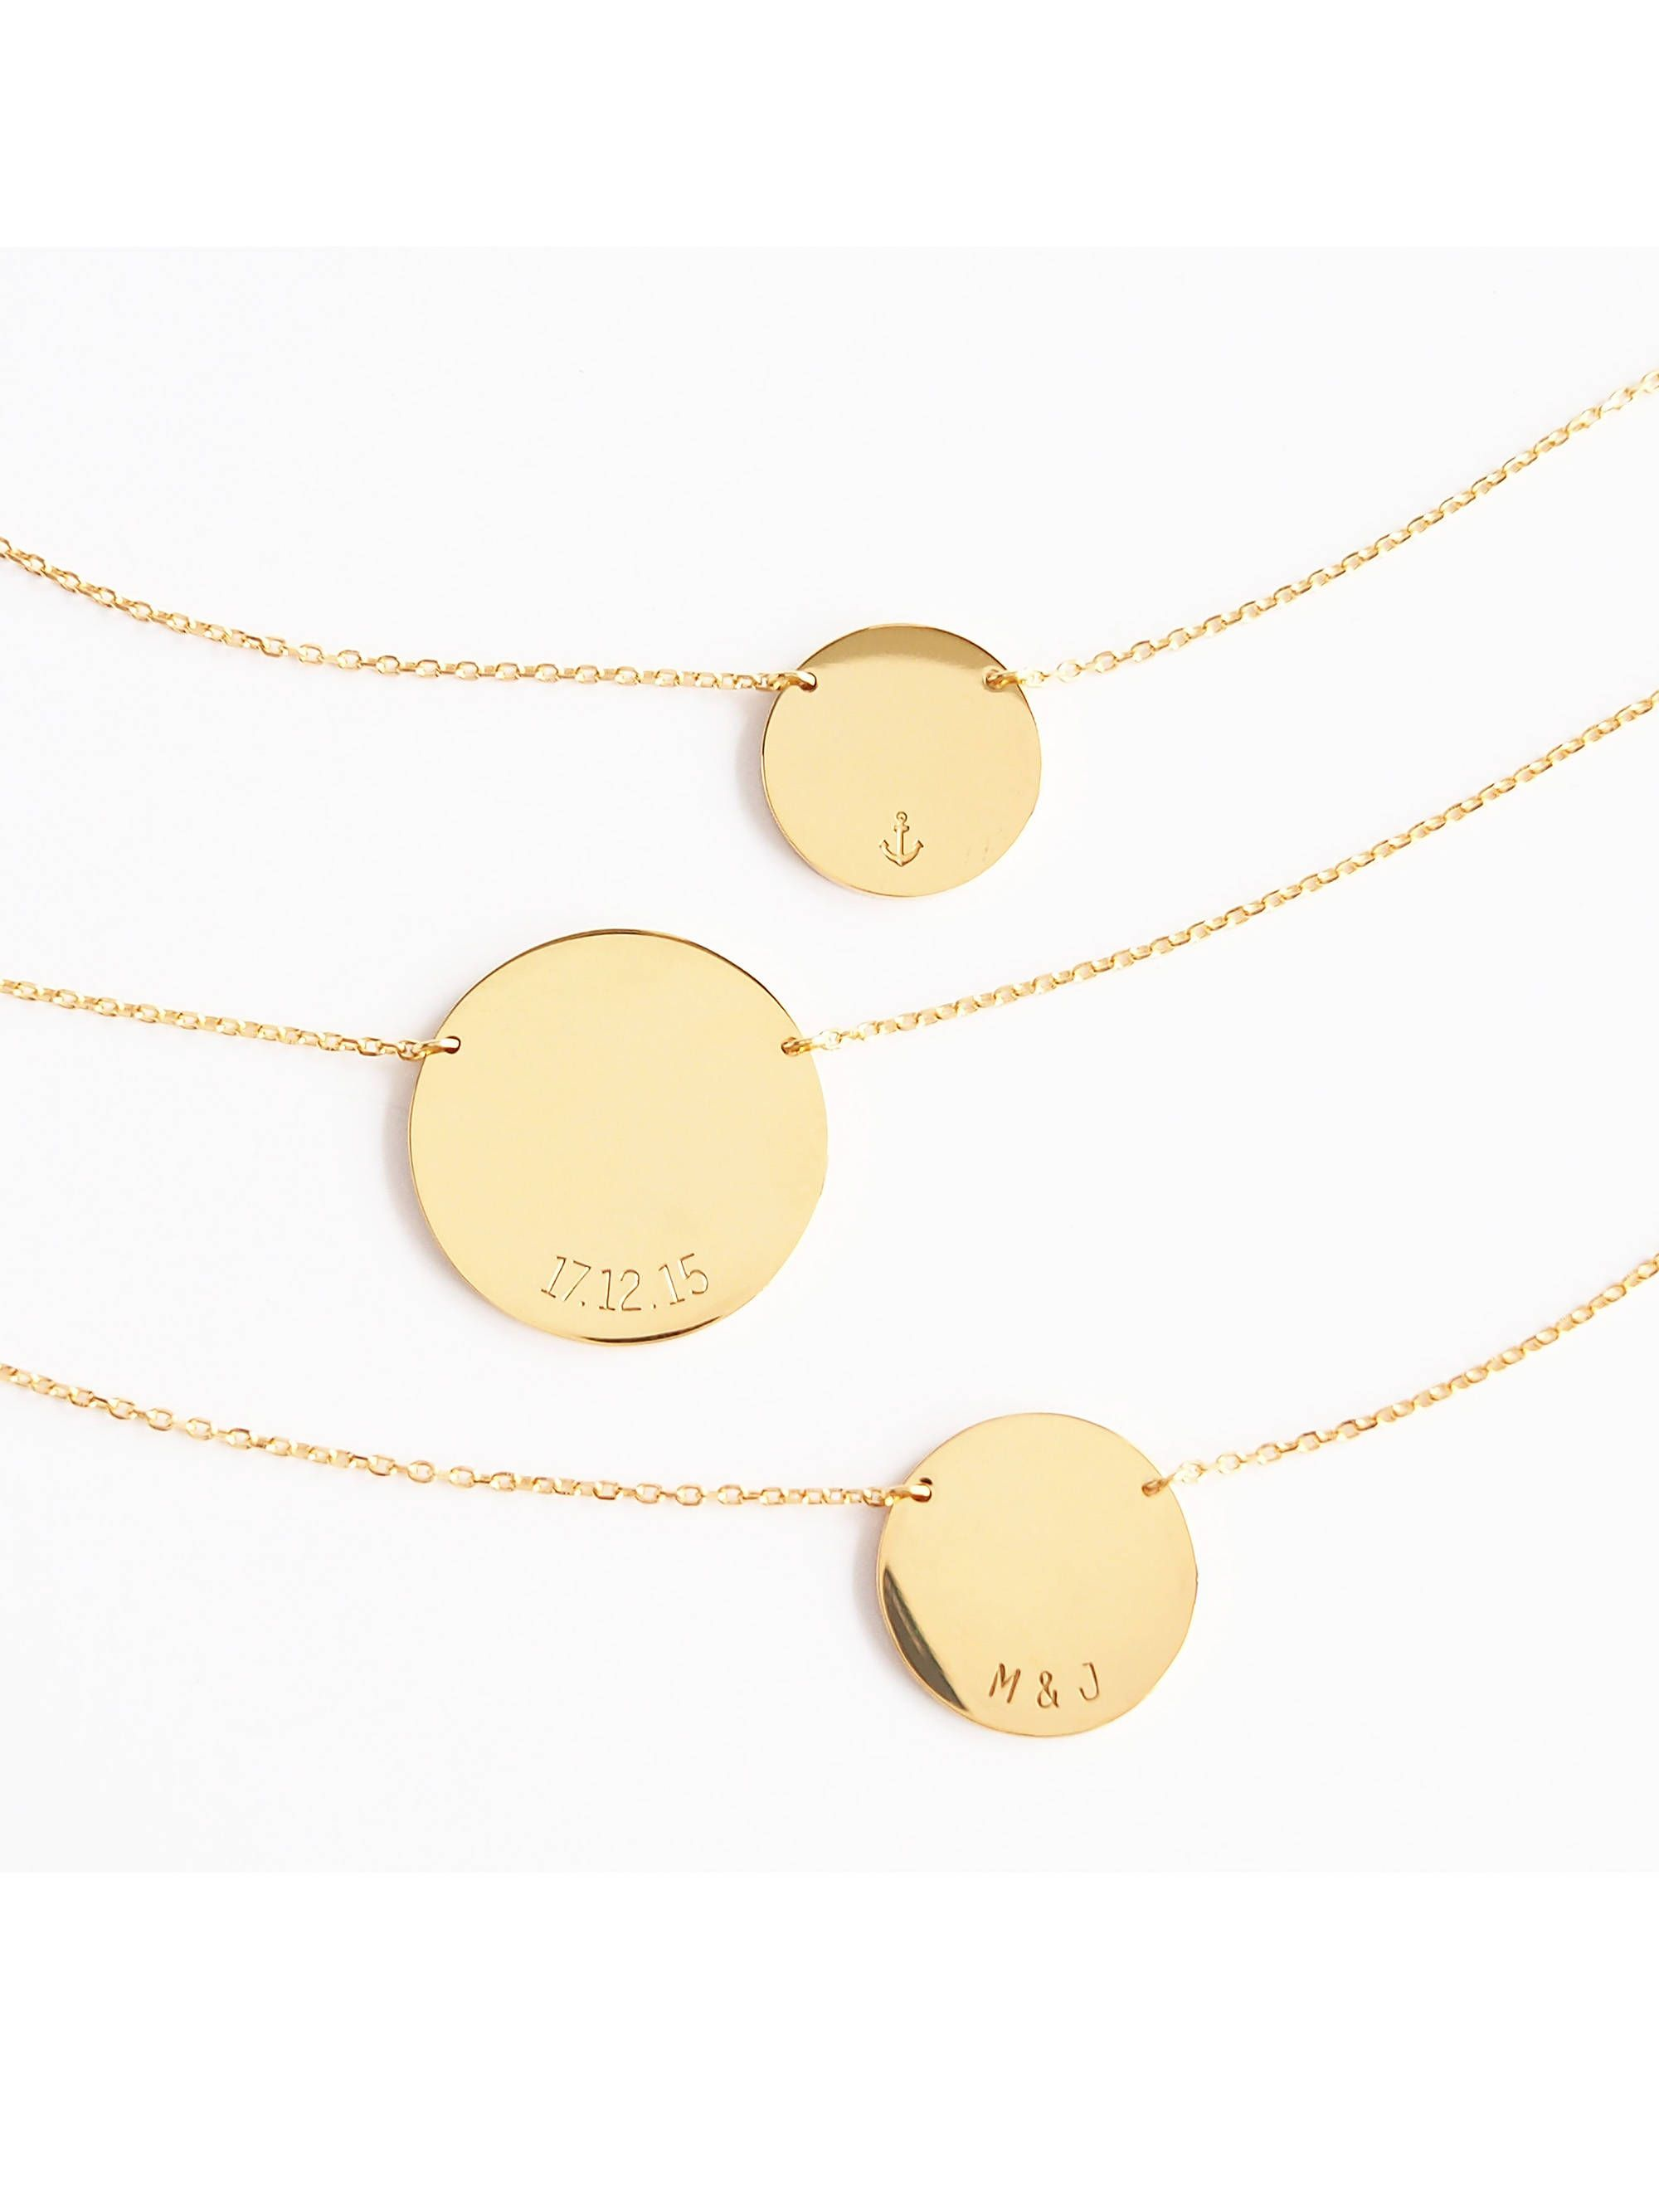 ephemera disk img circle necklace products